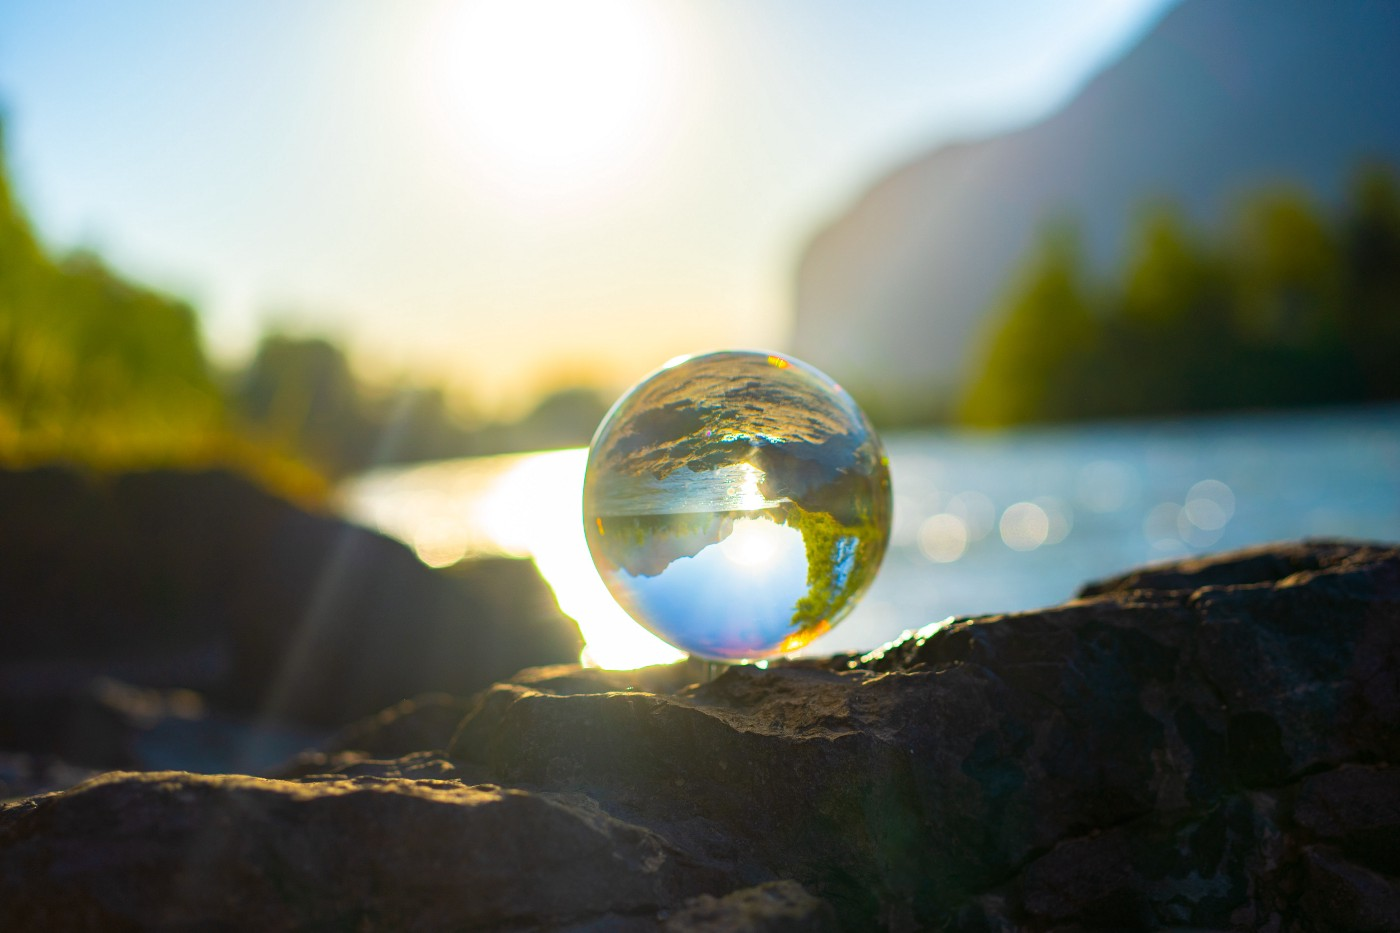 A glass ball reflects the scenery behind it, a mountain, lake, and trees, to create a mirror image of the earth.